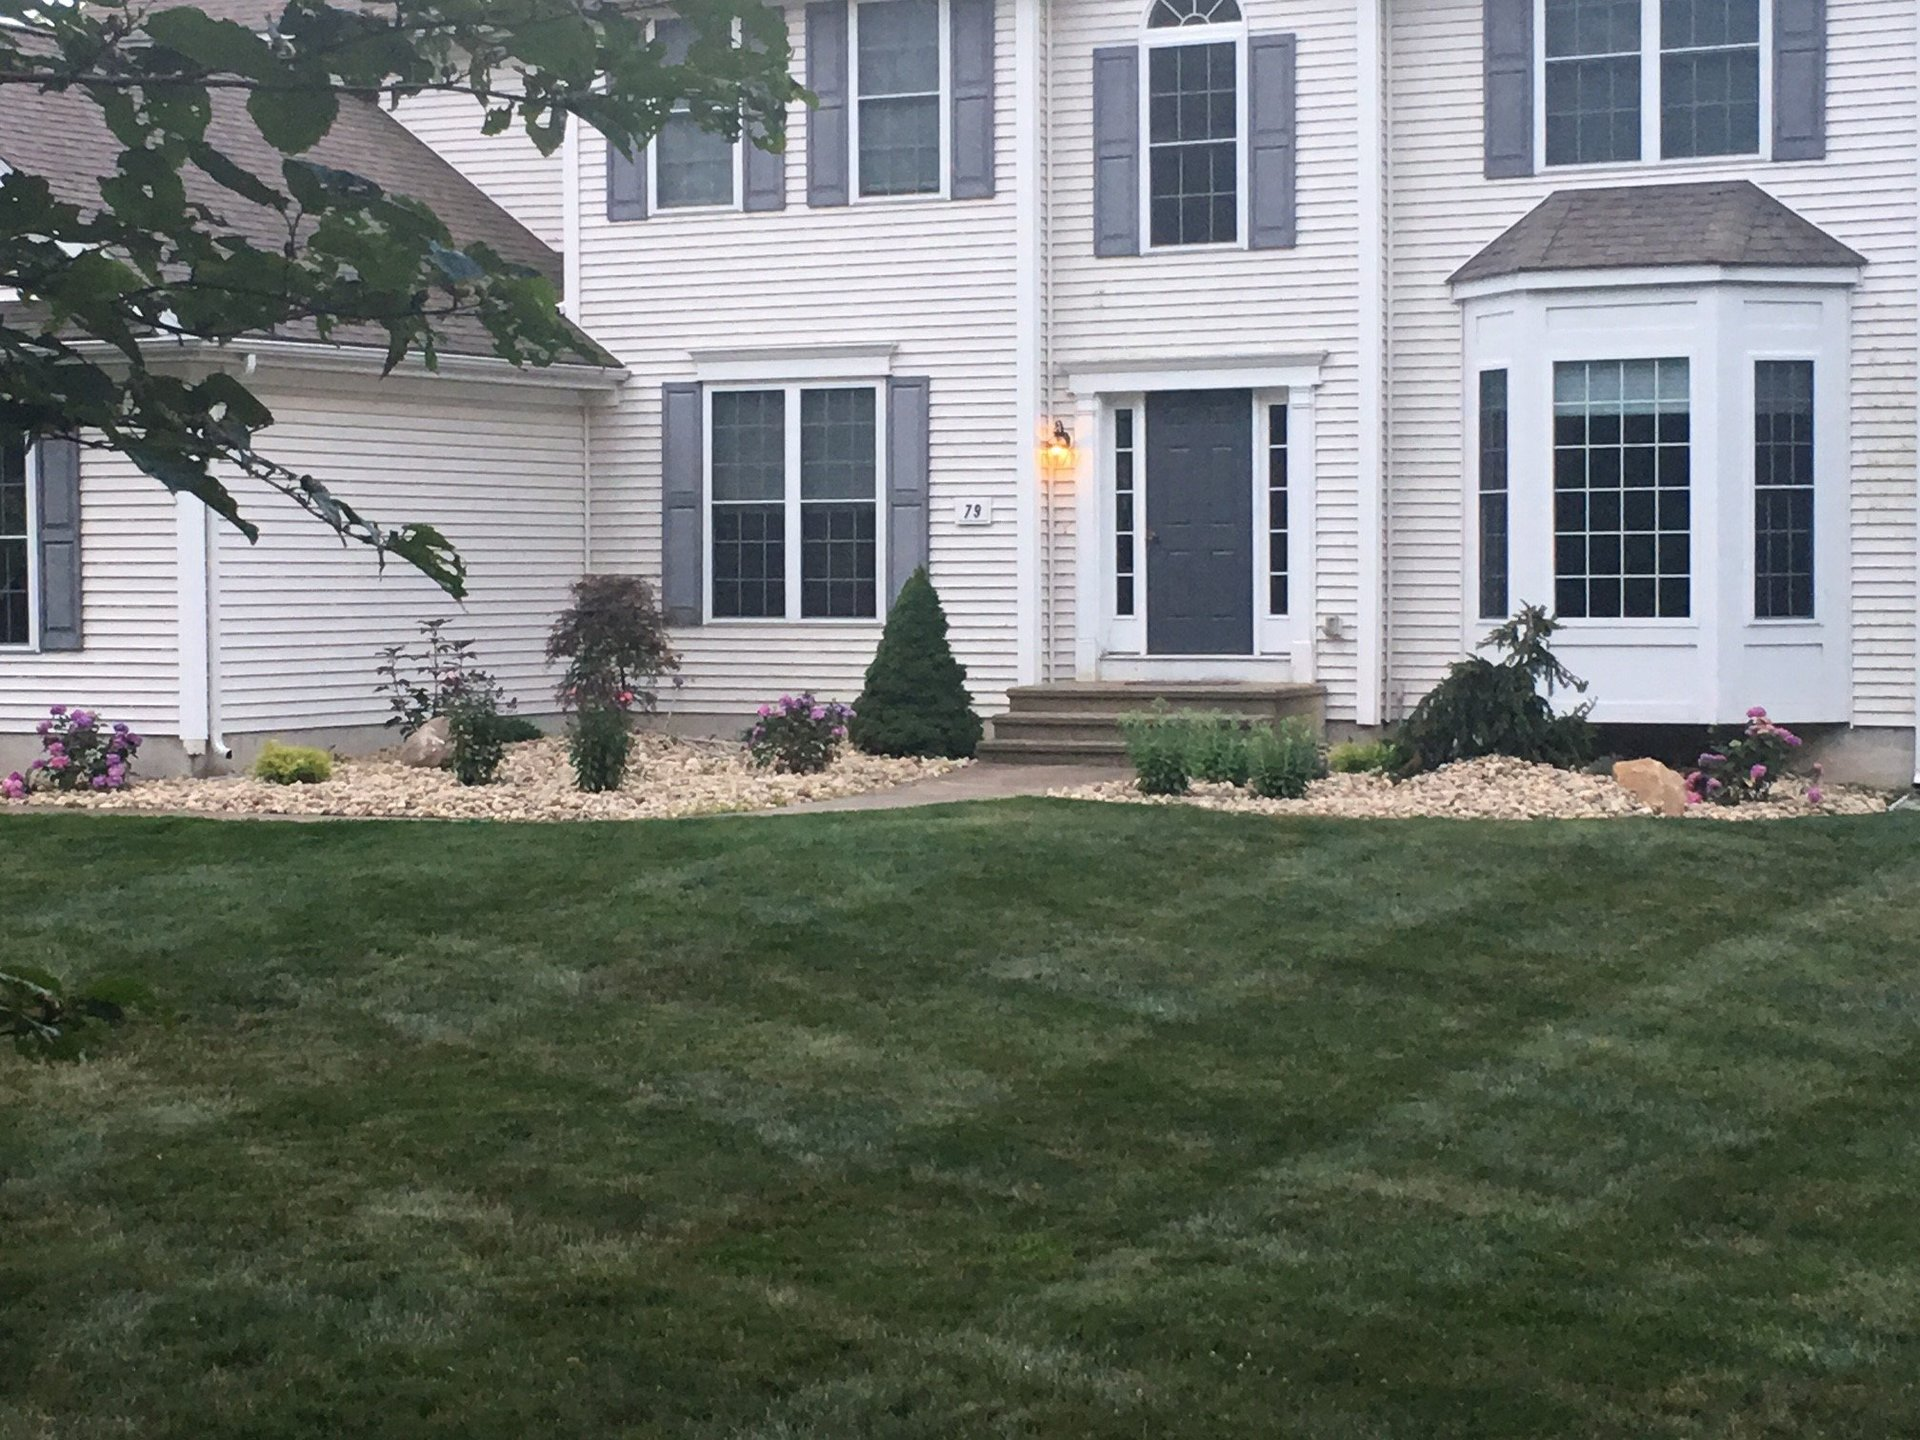 Front Lawn of House, Landscaping